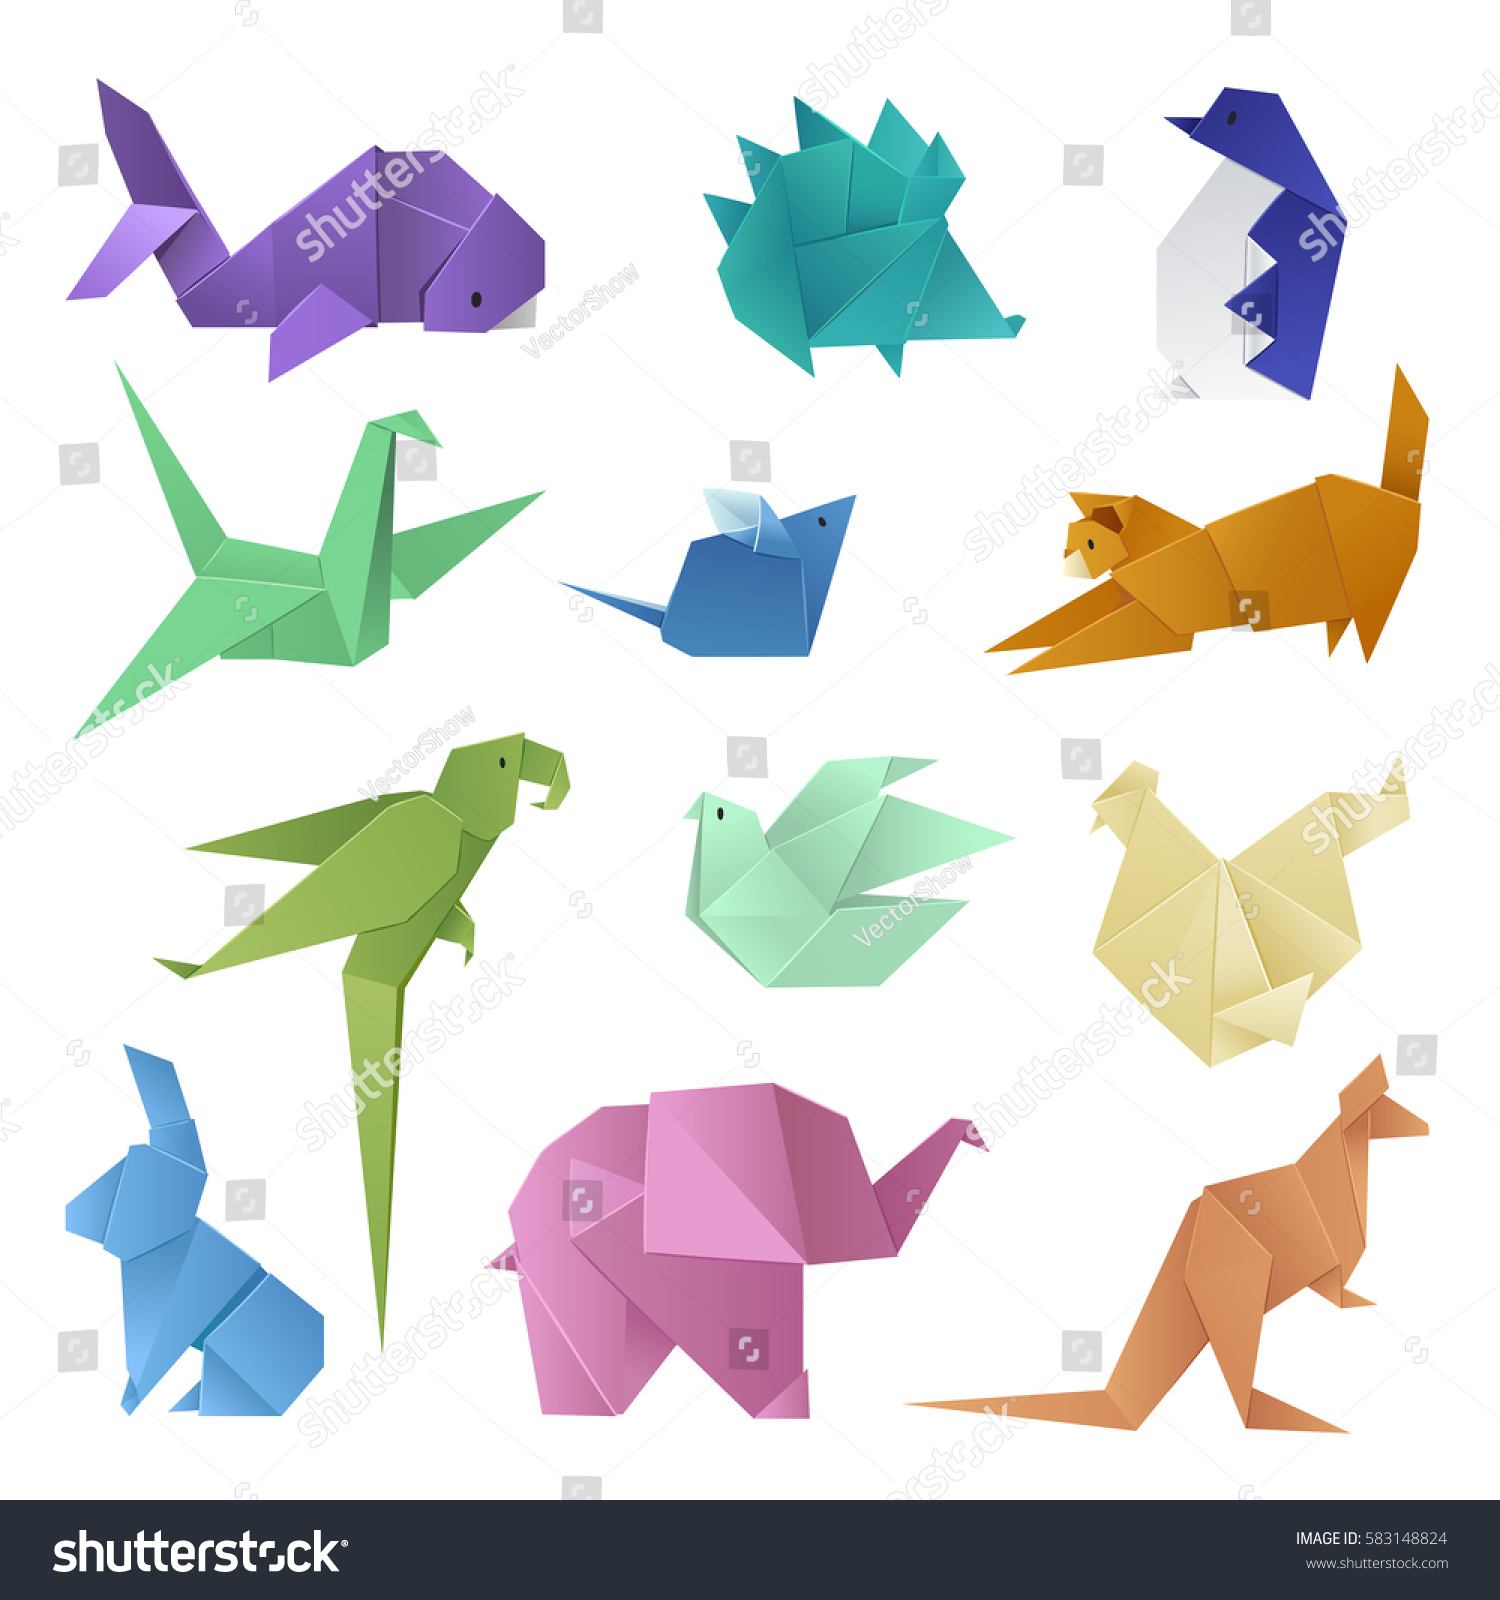 Origami different paper animals geometric game stock vector origami different paper animals geometric game japanese toys design and asia traditional decoration origami original paper jeuxipadfo Images